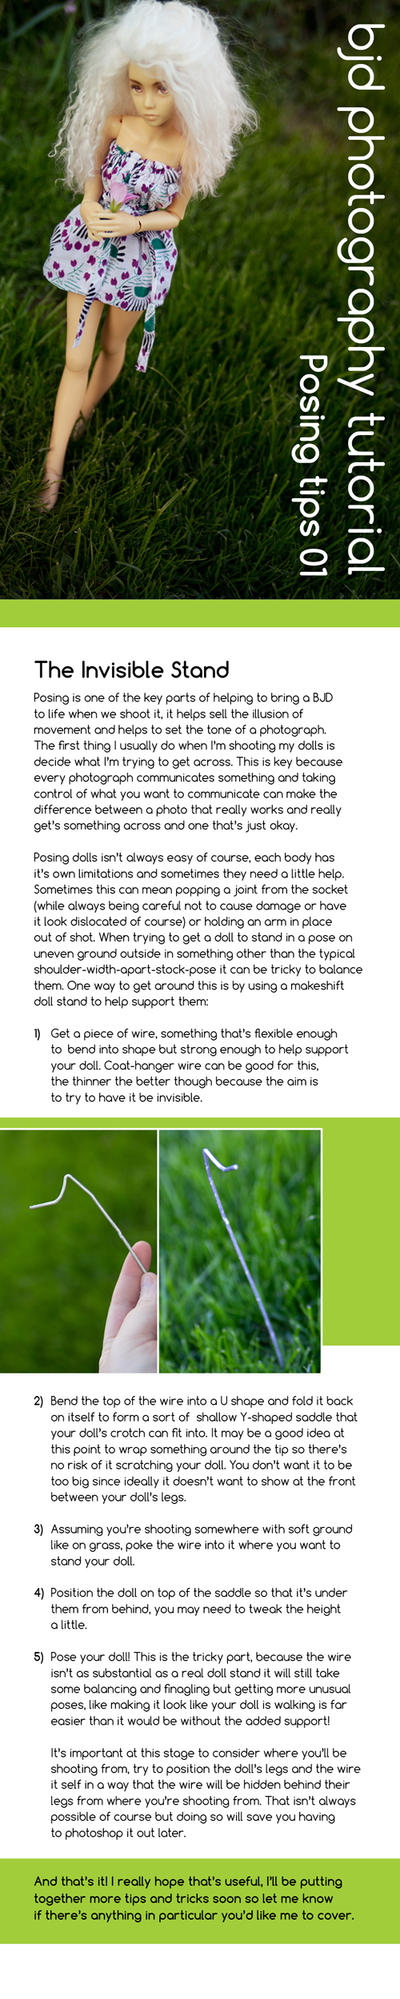 BJD Posing tips 01 by Geekisthecolour